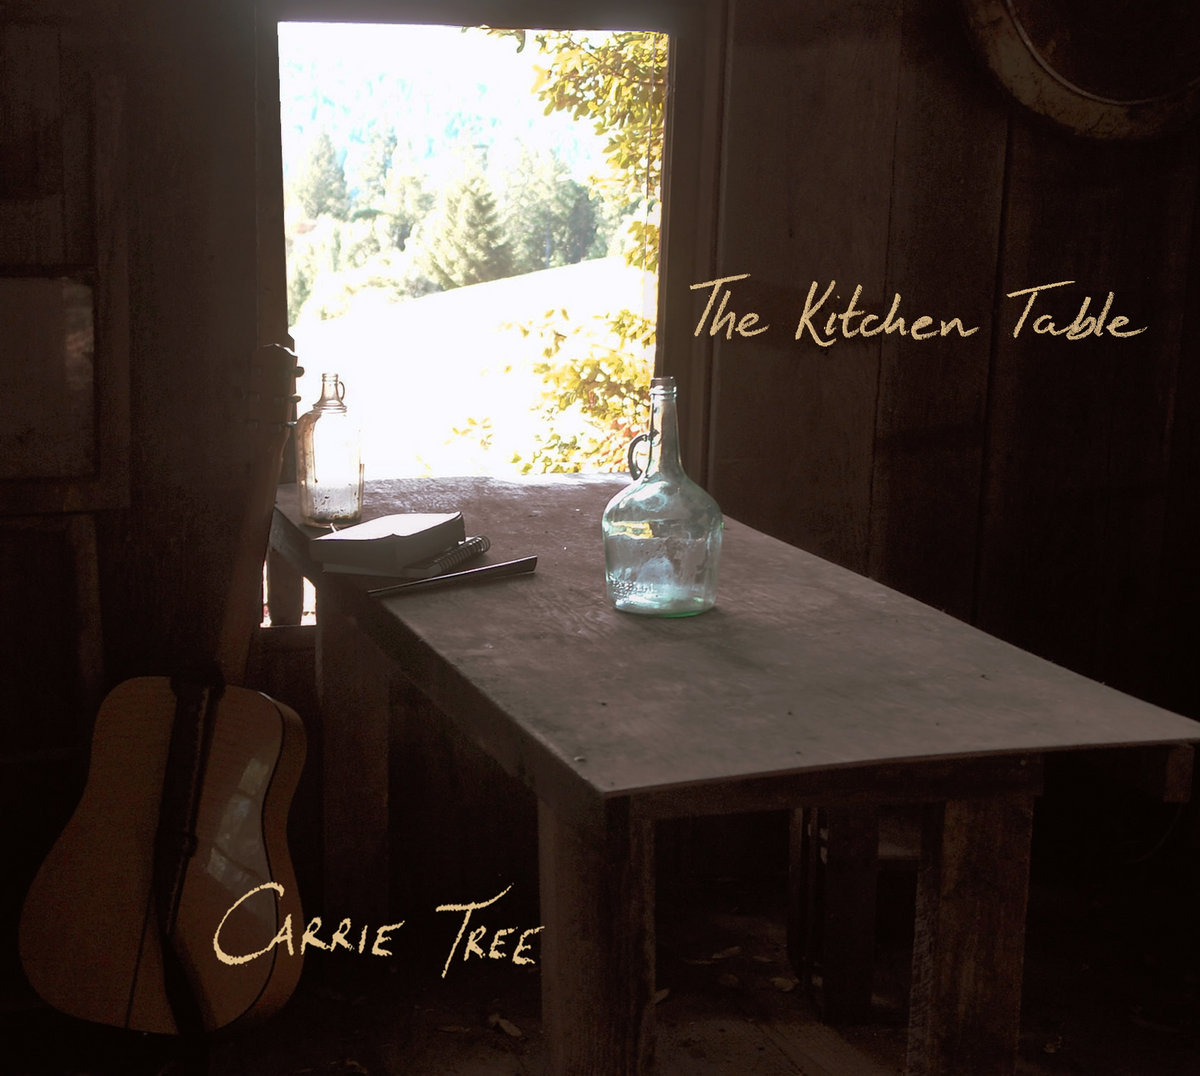 the kitchen table the kitchen table The Kitchen Table